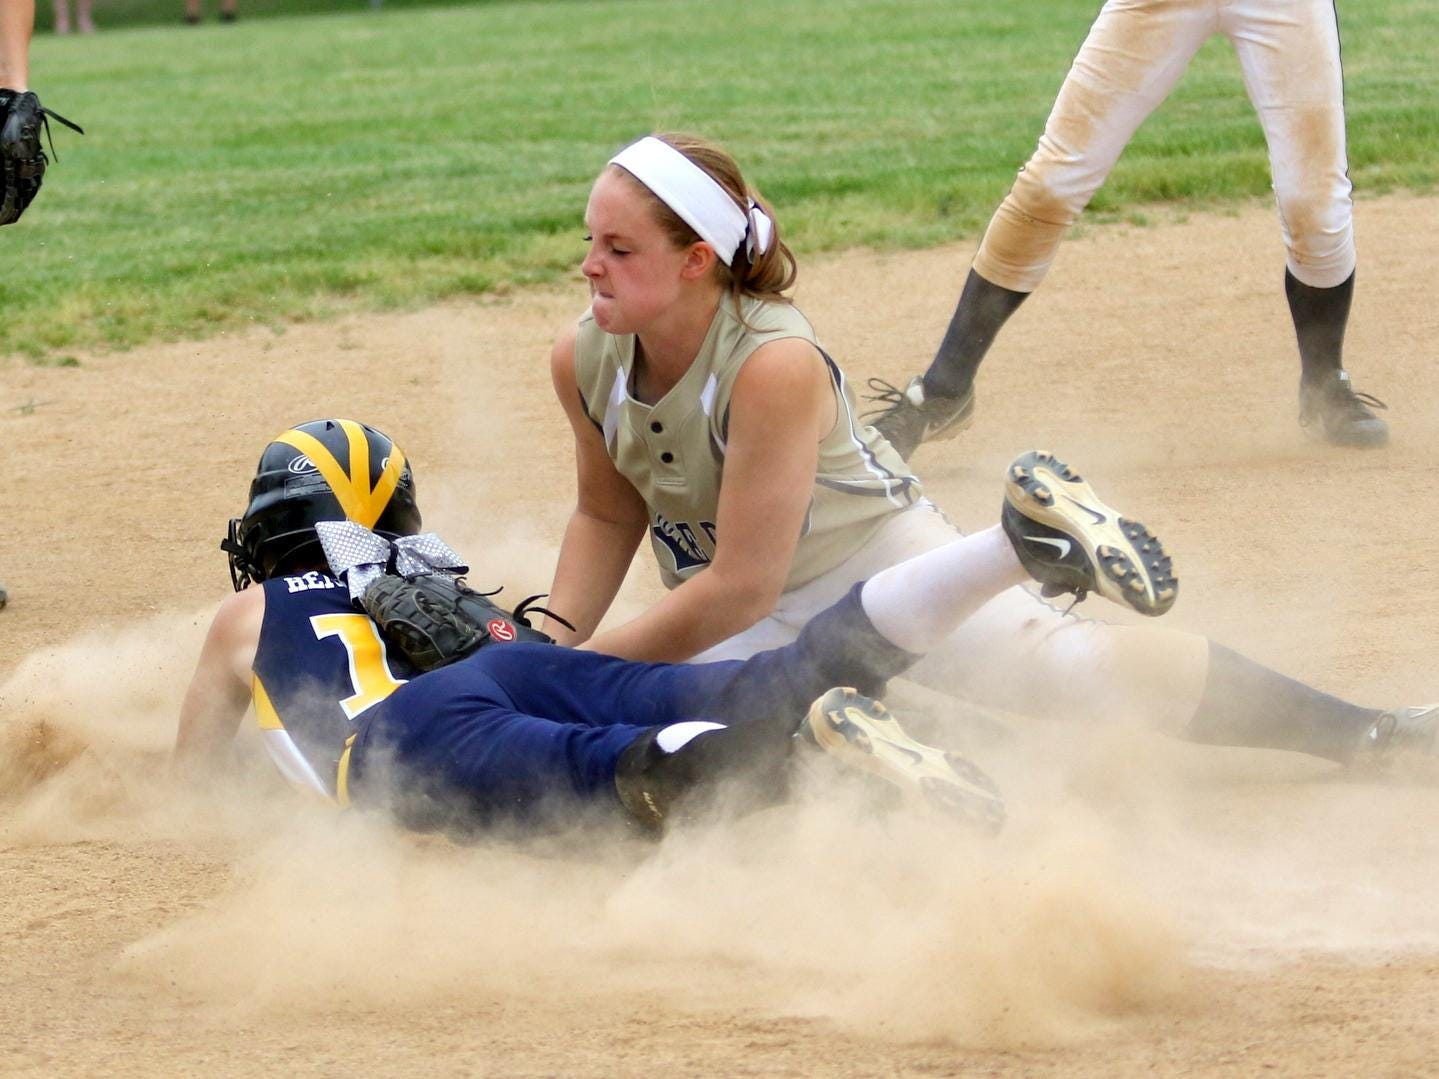 Notre Dame third baseman Makenzie Maloney tags out Tioga's Paige Hendershot during this season's Section 4 Class C softball final at the BAGSAI Complex. Maloney earned second-team Class C all-state honors.